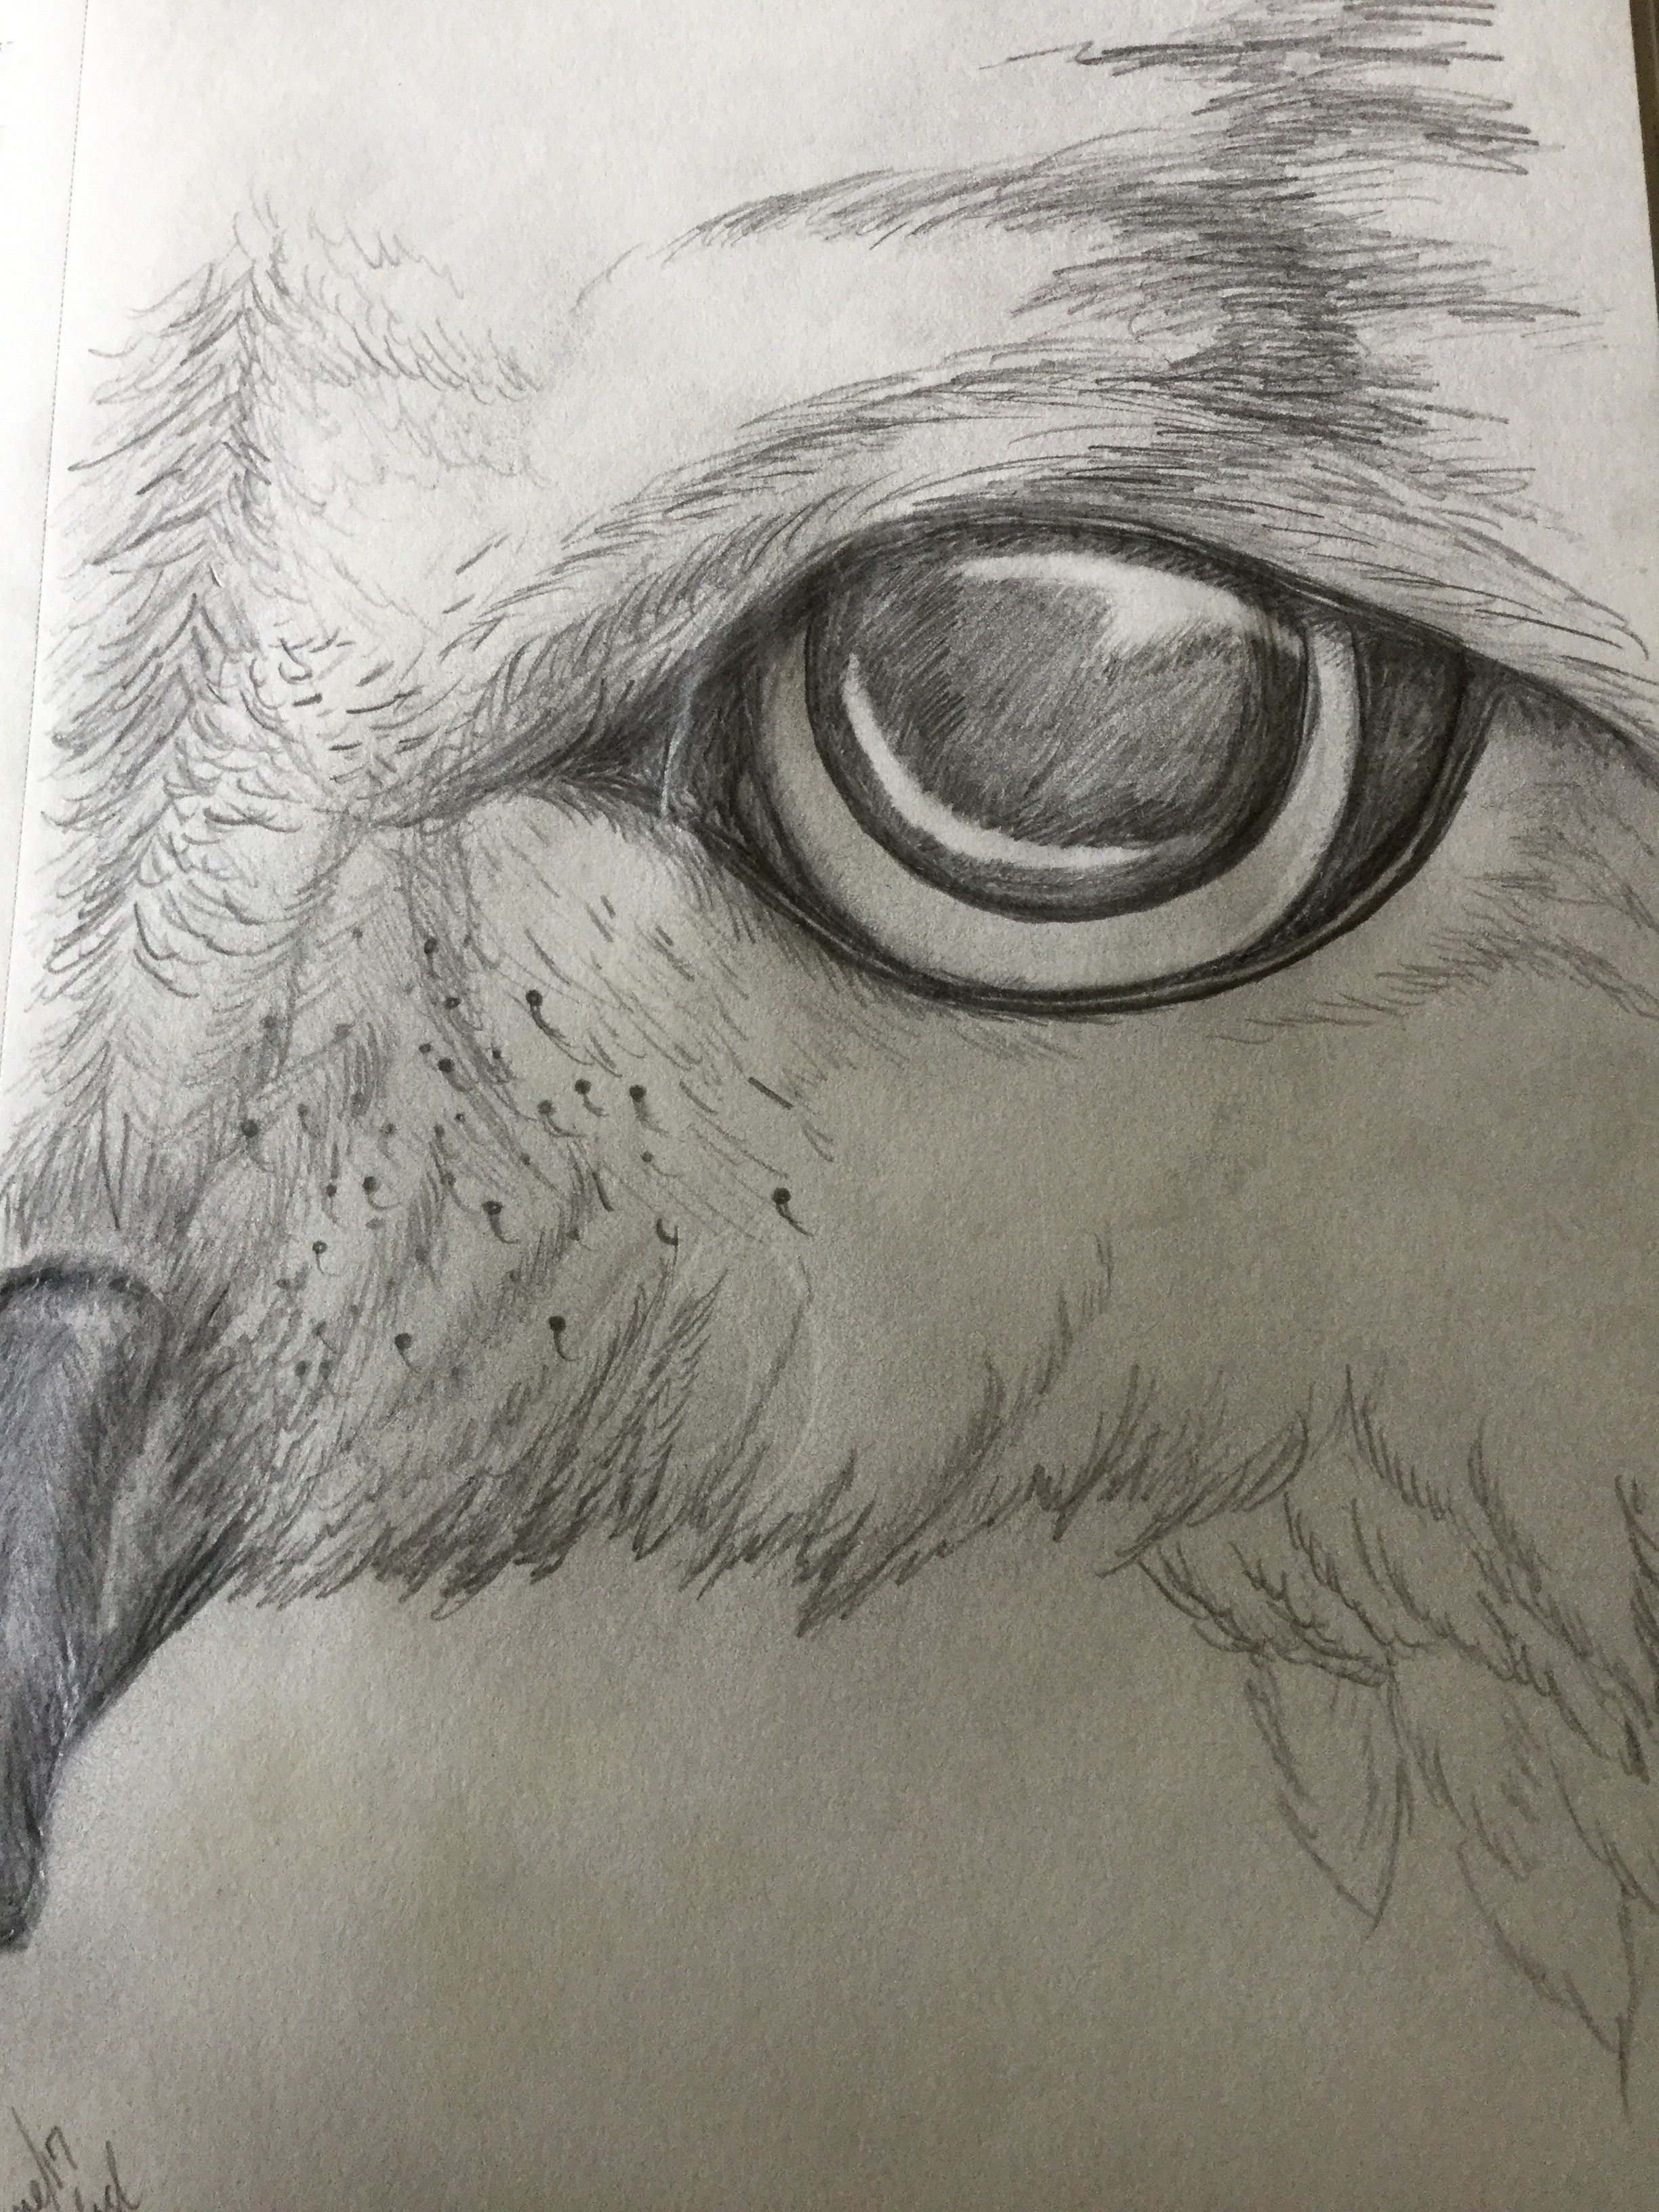 Pencil drawing of owl eye michelle in 2019 pencil drawings owl